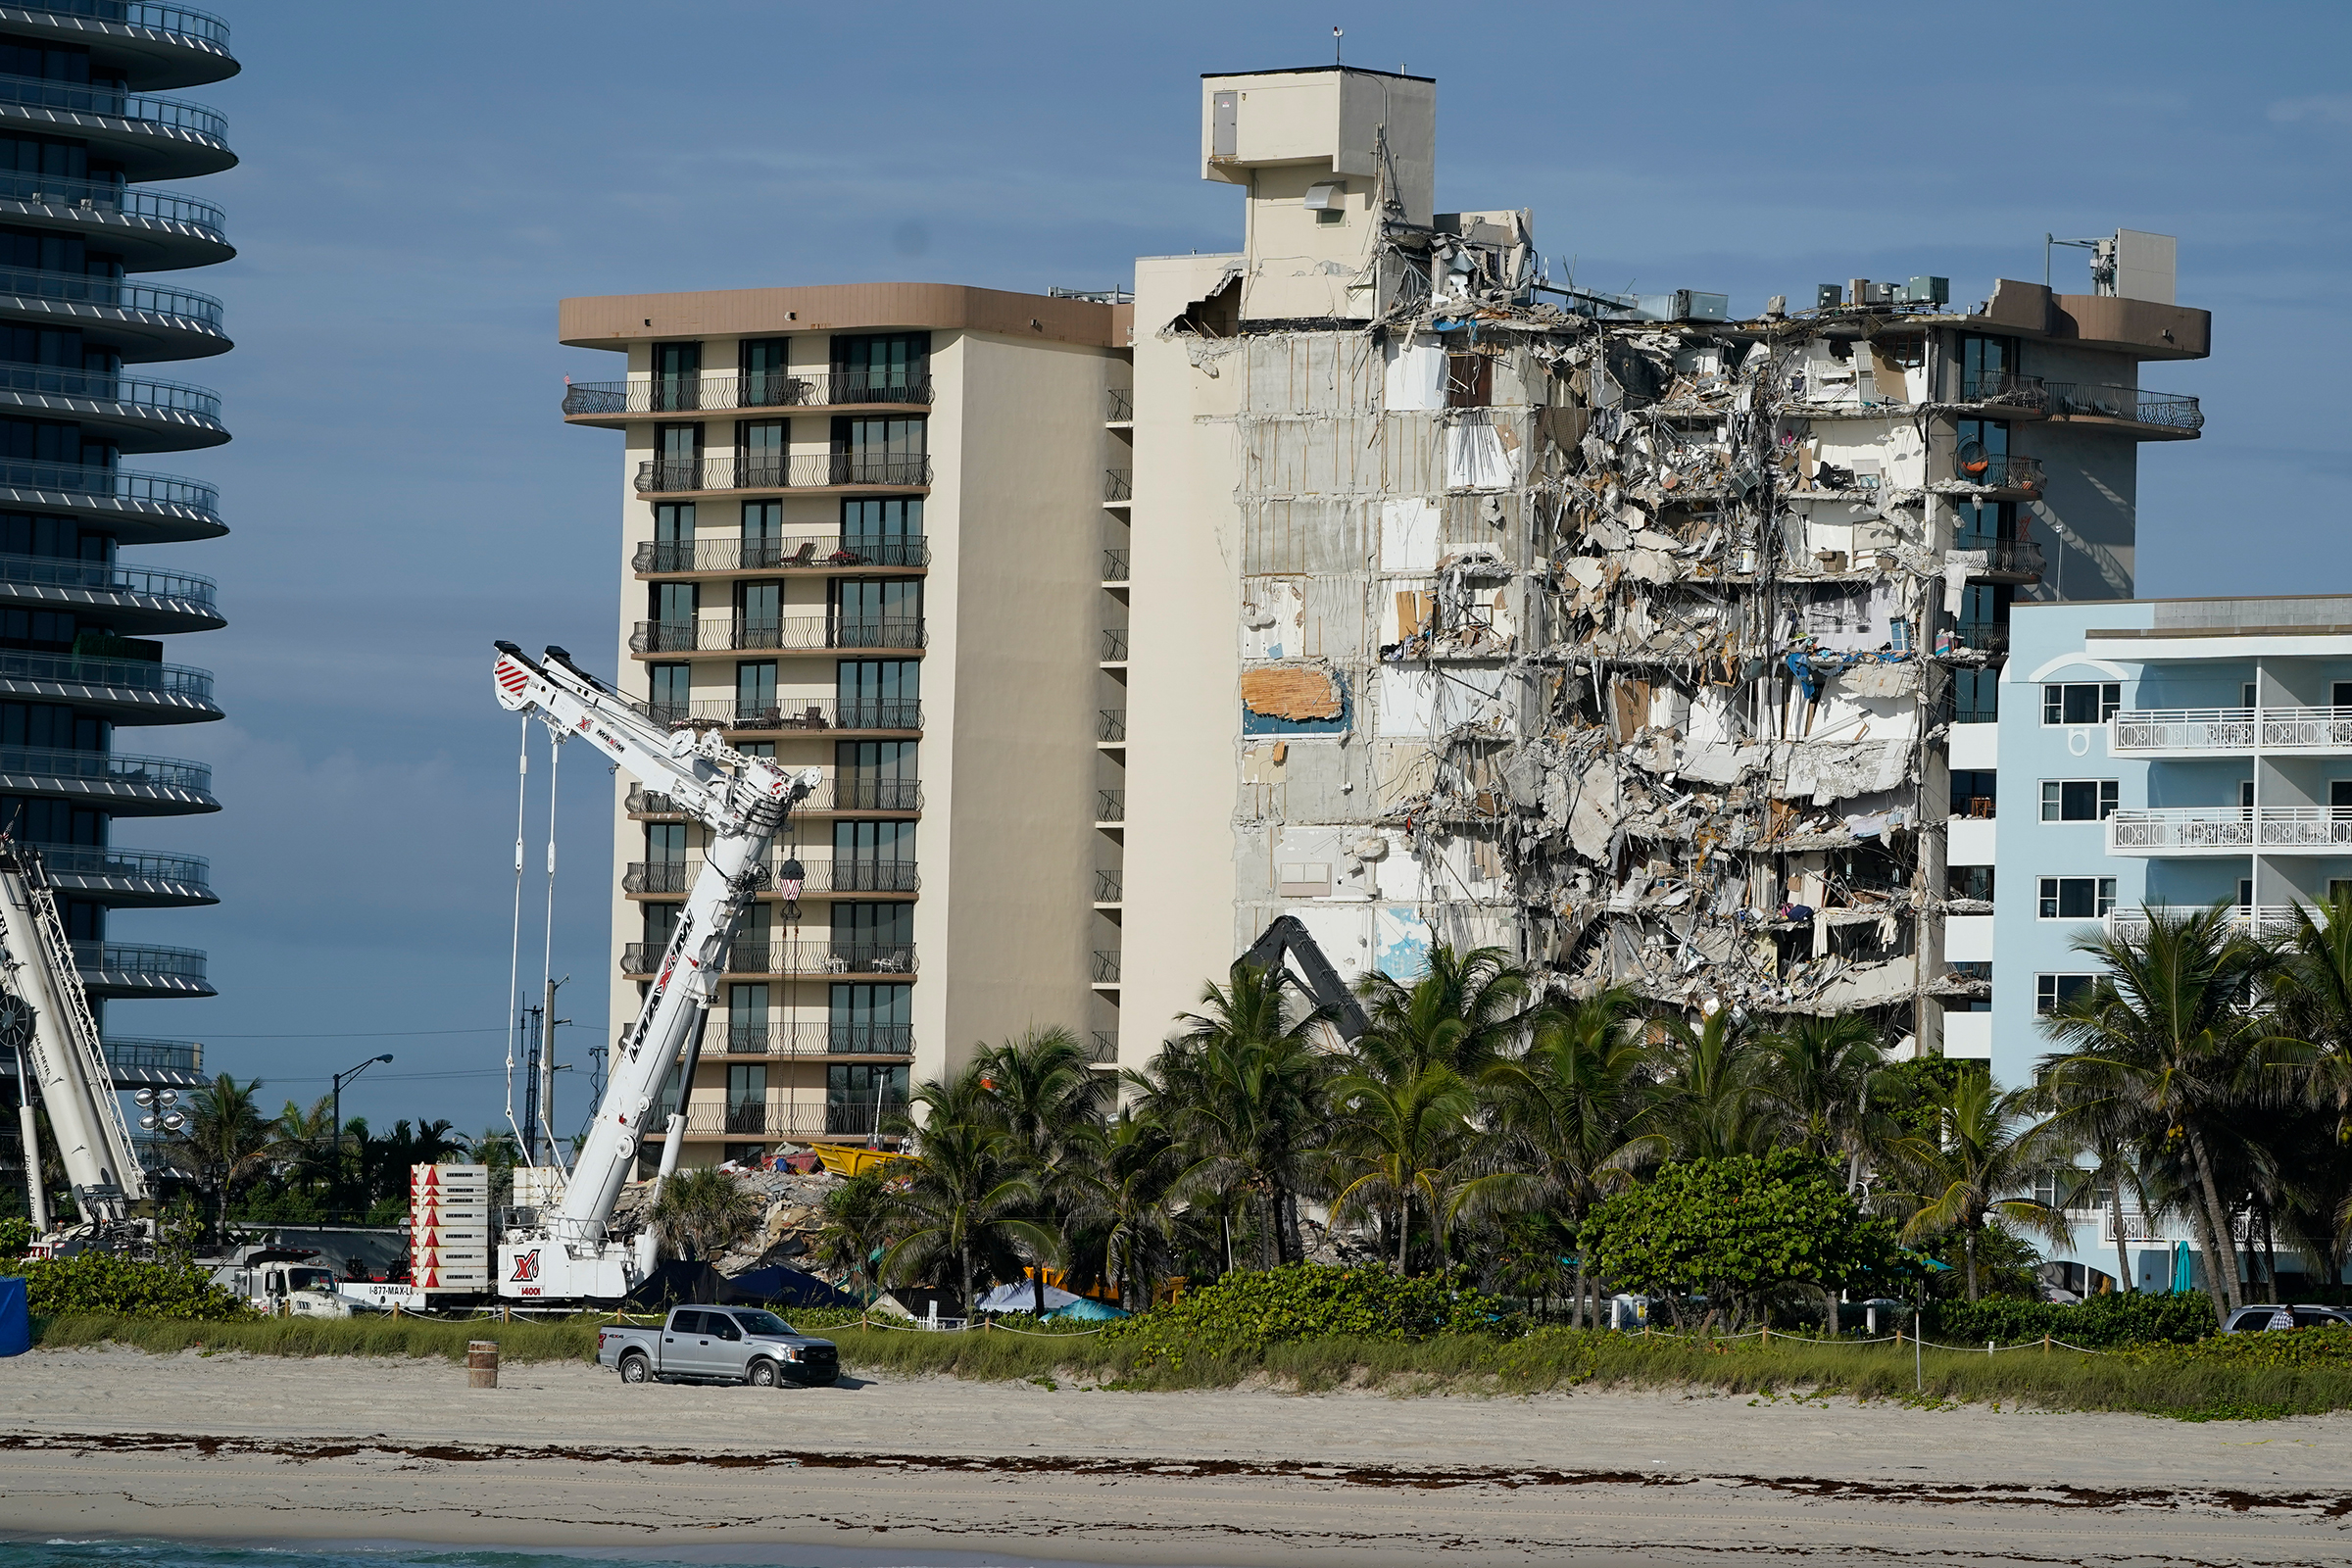 Heavy machinery sits in front of the partially collapsed Champlain Towers South condo building, on Thursday, July 1, in Surfside, Florida.